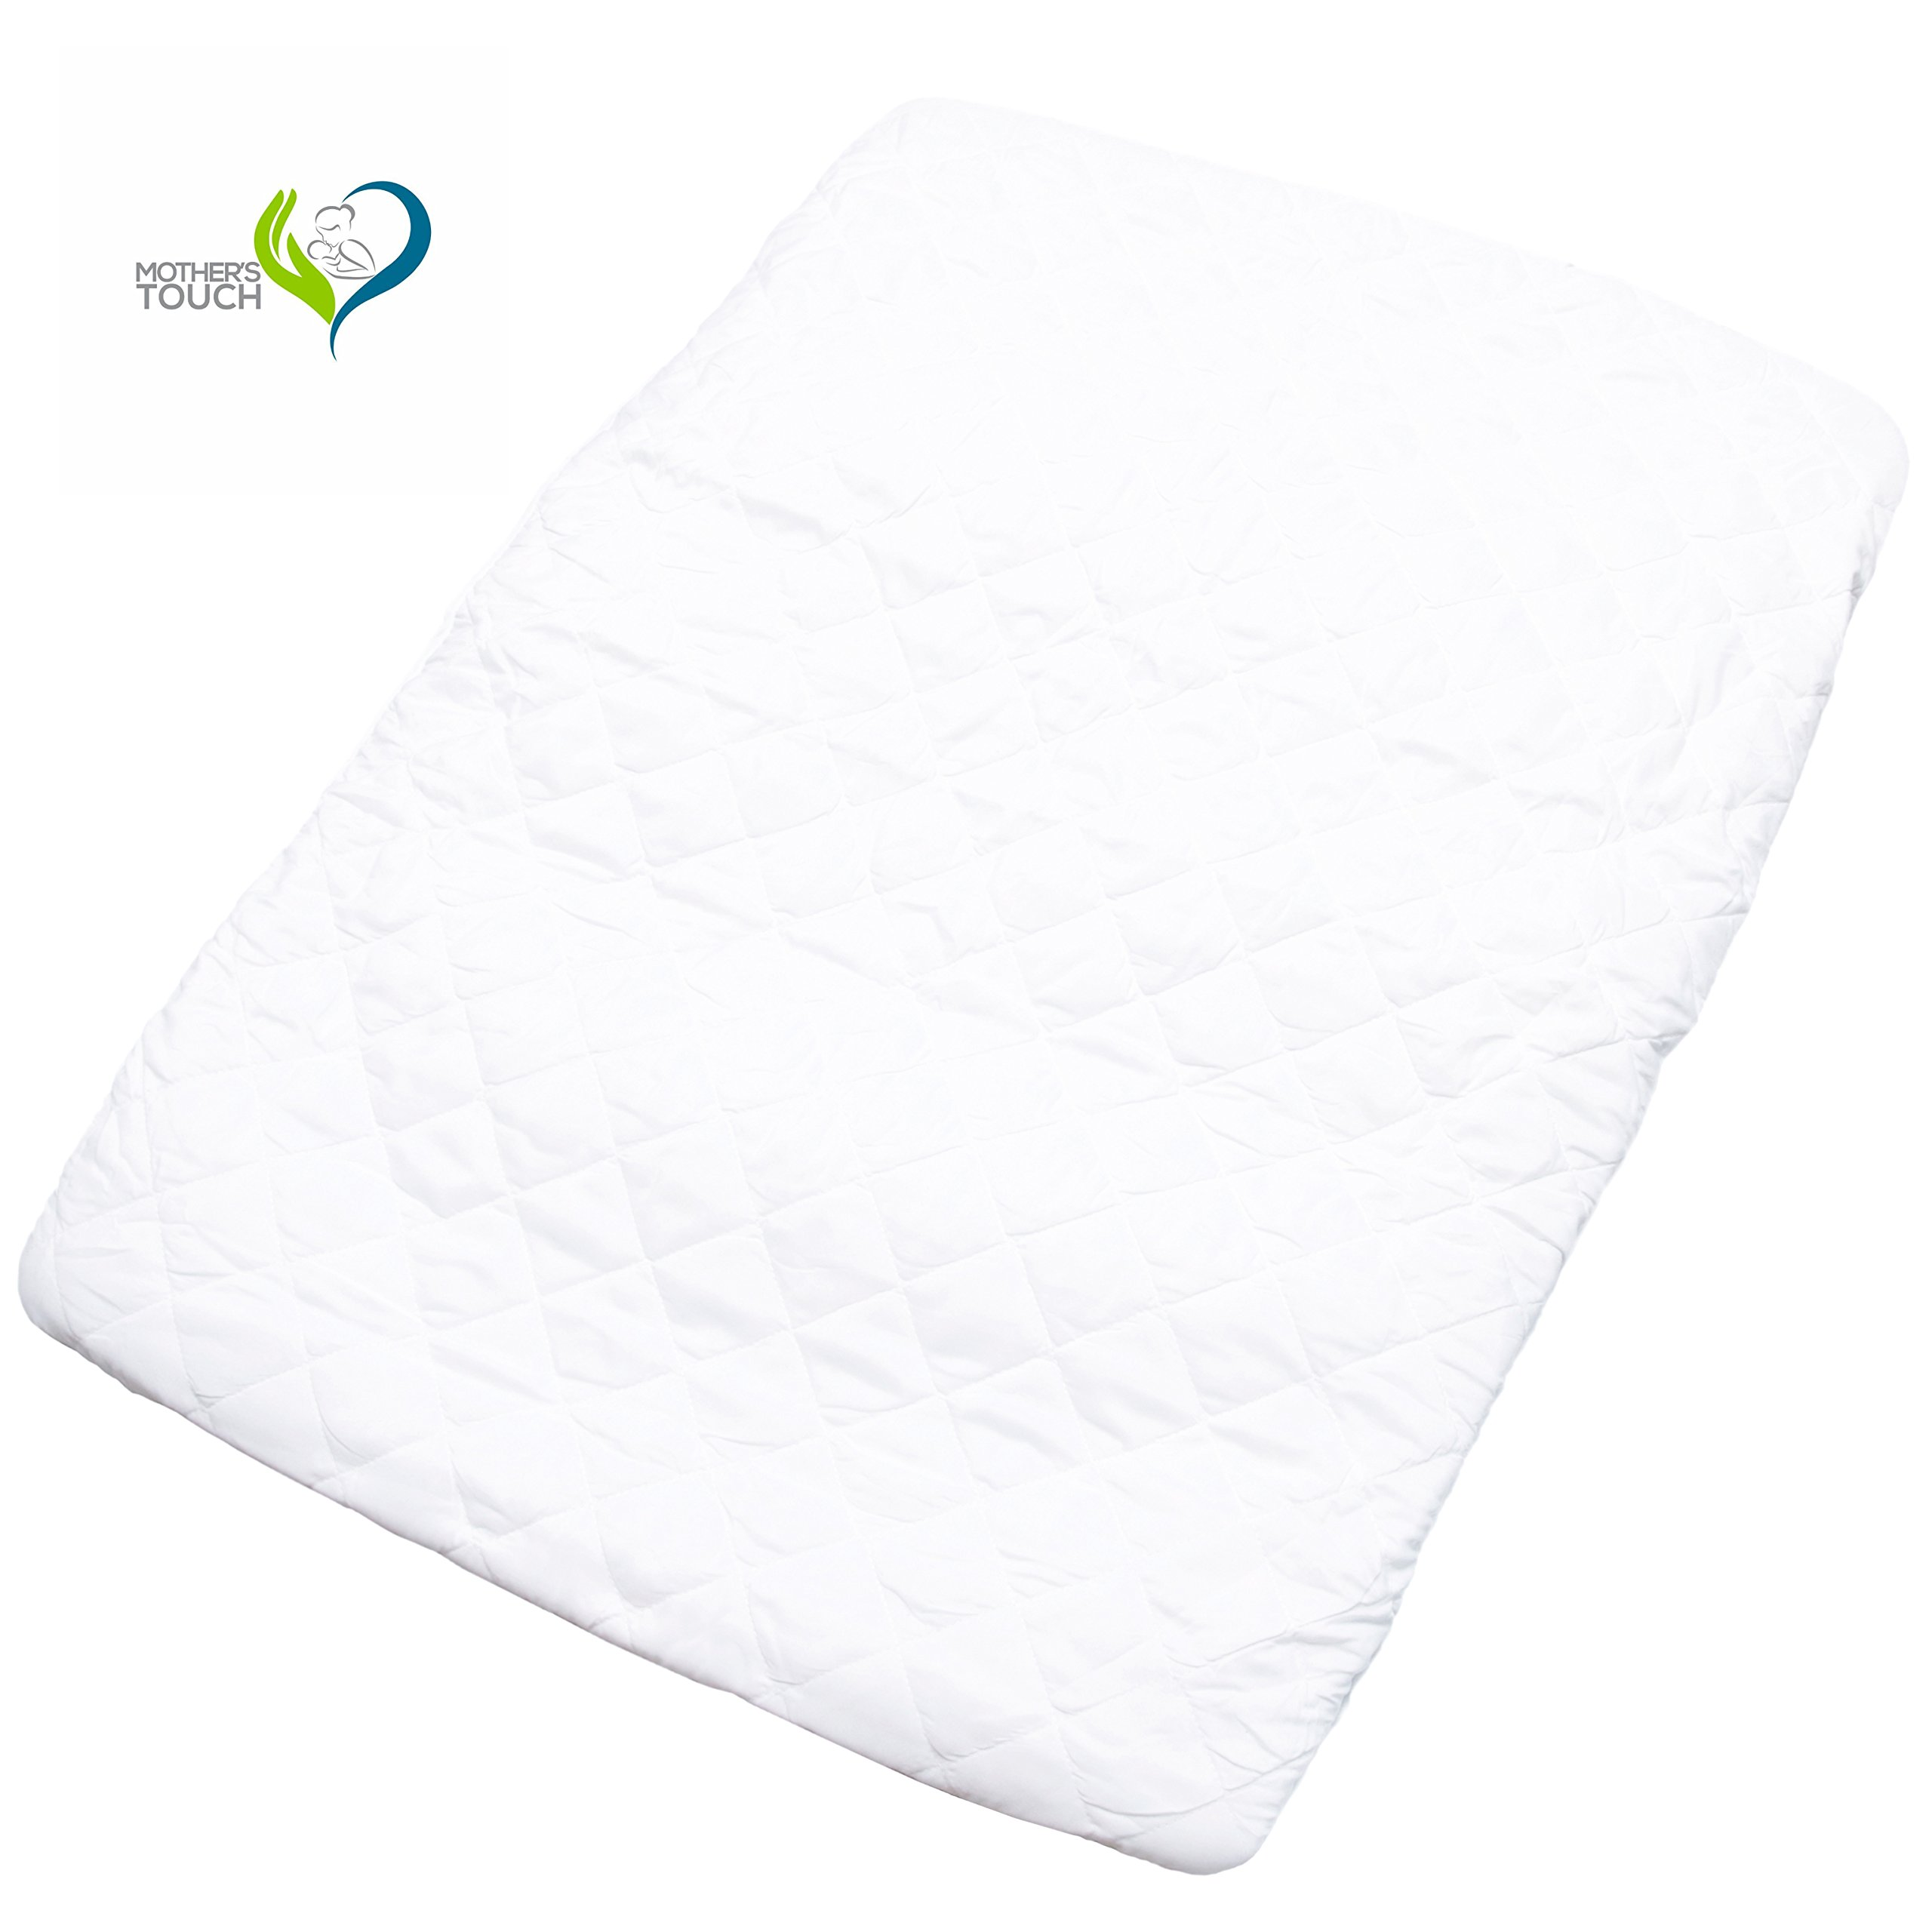 Mother's Touch Pack N Play Padded Crib Mattress Cover - Fits All Baby Portable Cribs, Play Yards and Foldable Mattresses - Waterproof, Dryer Safe and Hypoallergenic